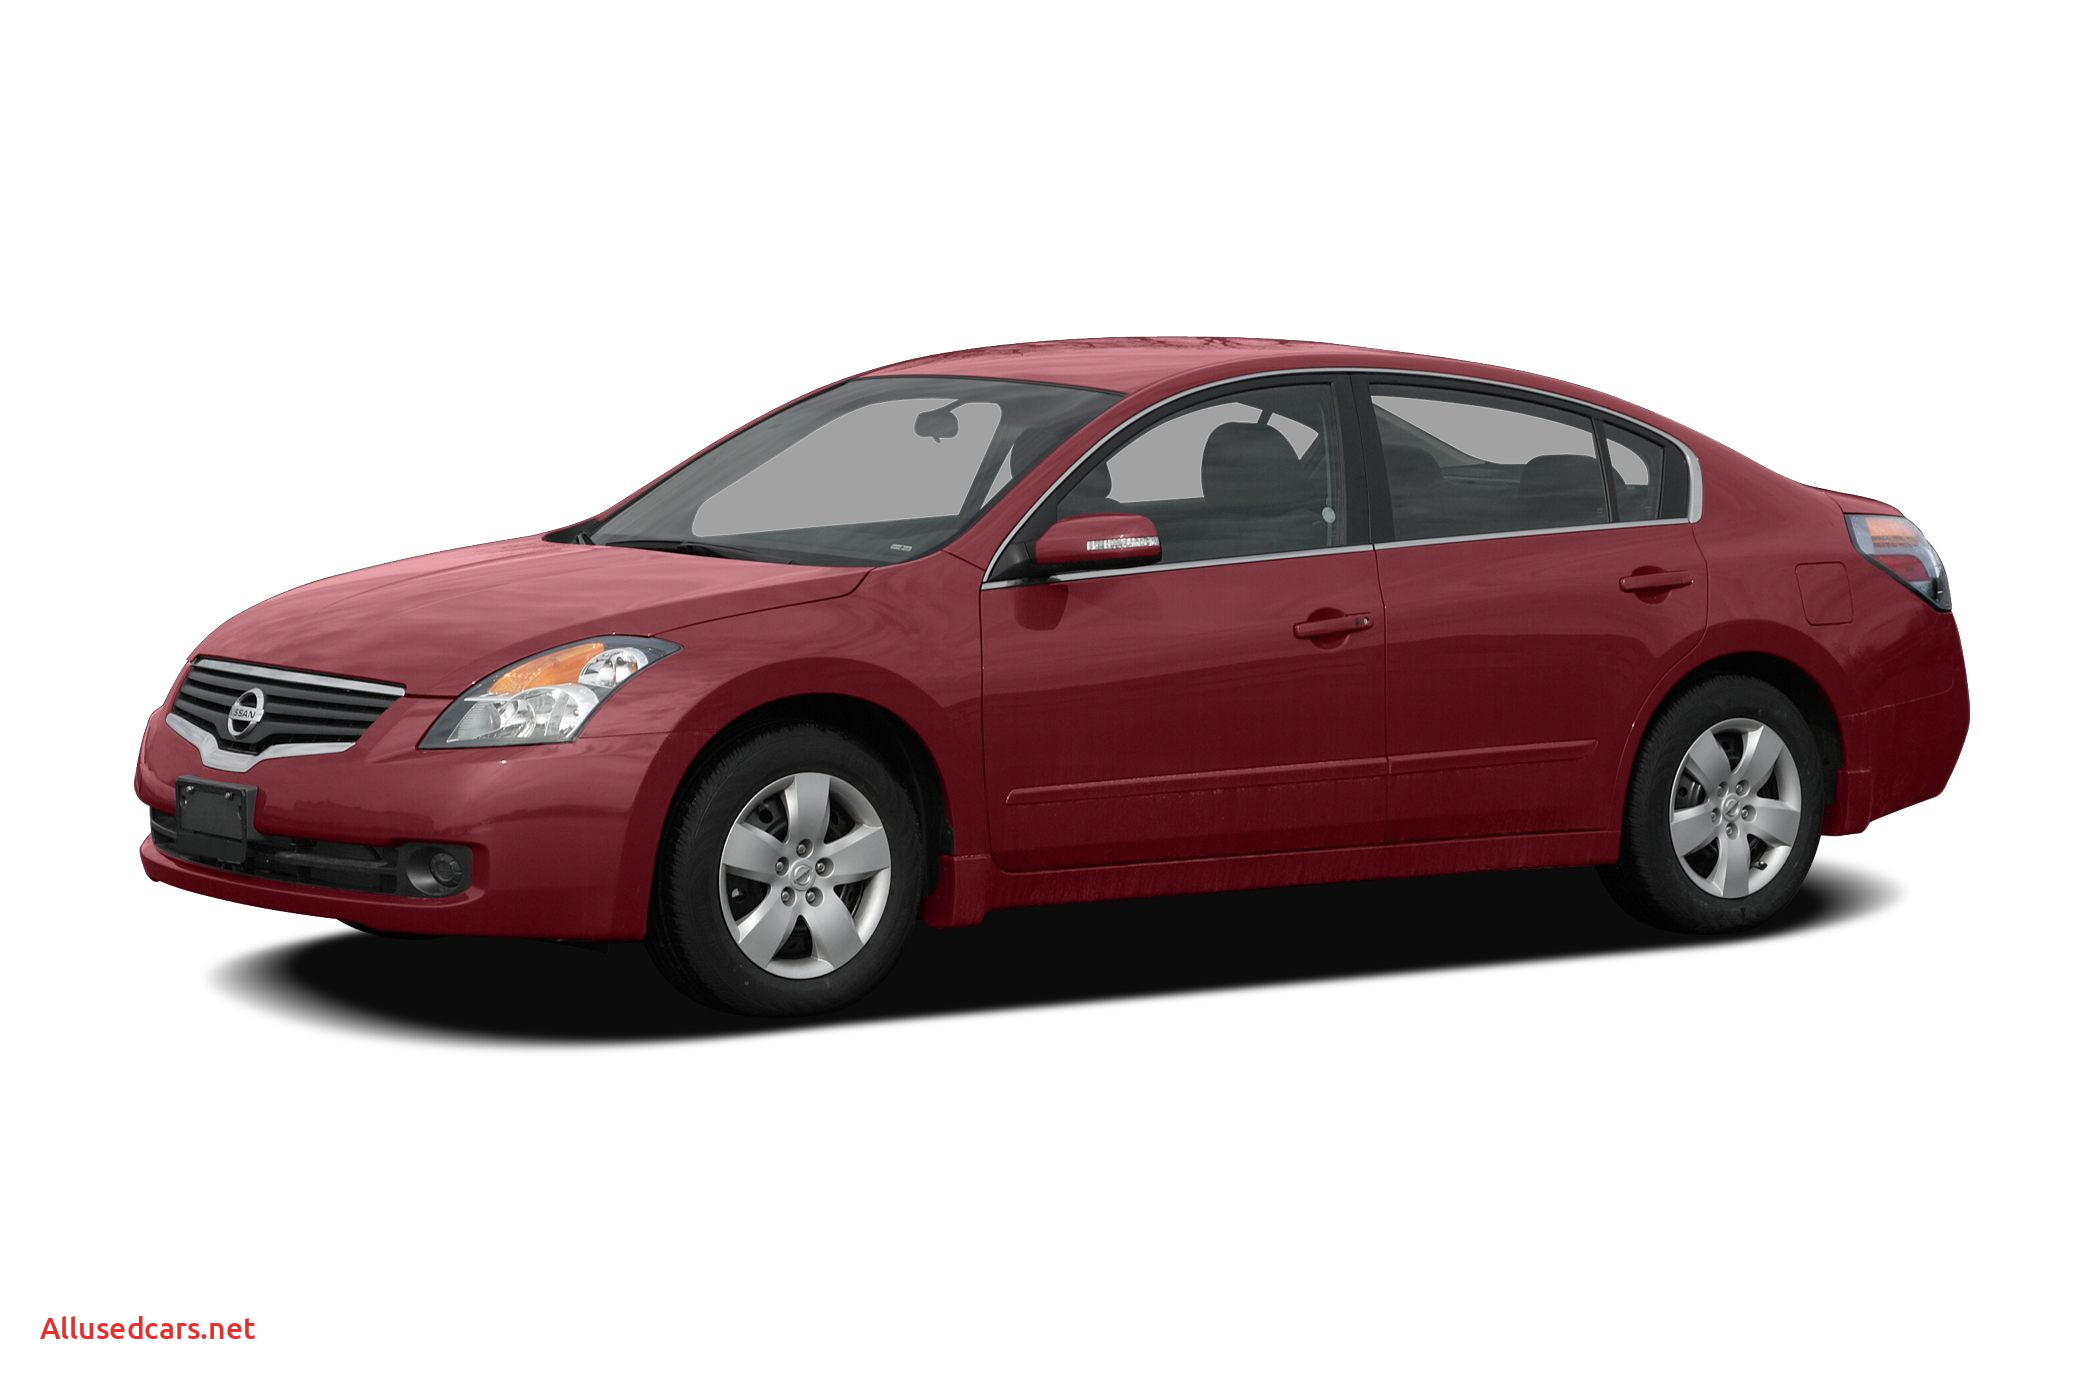 2010 Nissan Maxima Beautiful New and Used Nissan Altima In San Diego Ca Priced Below